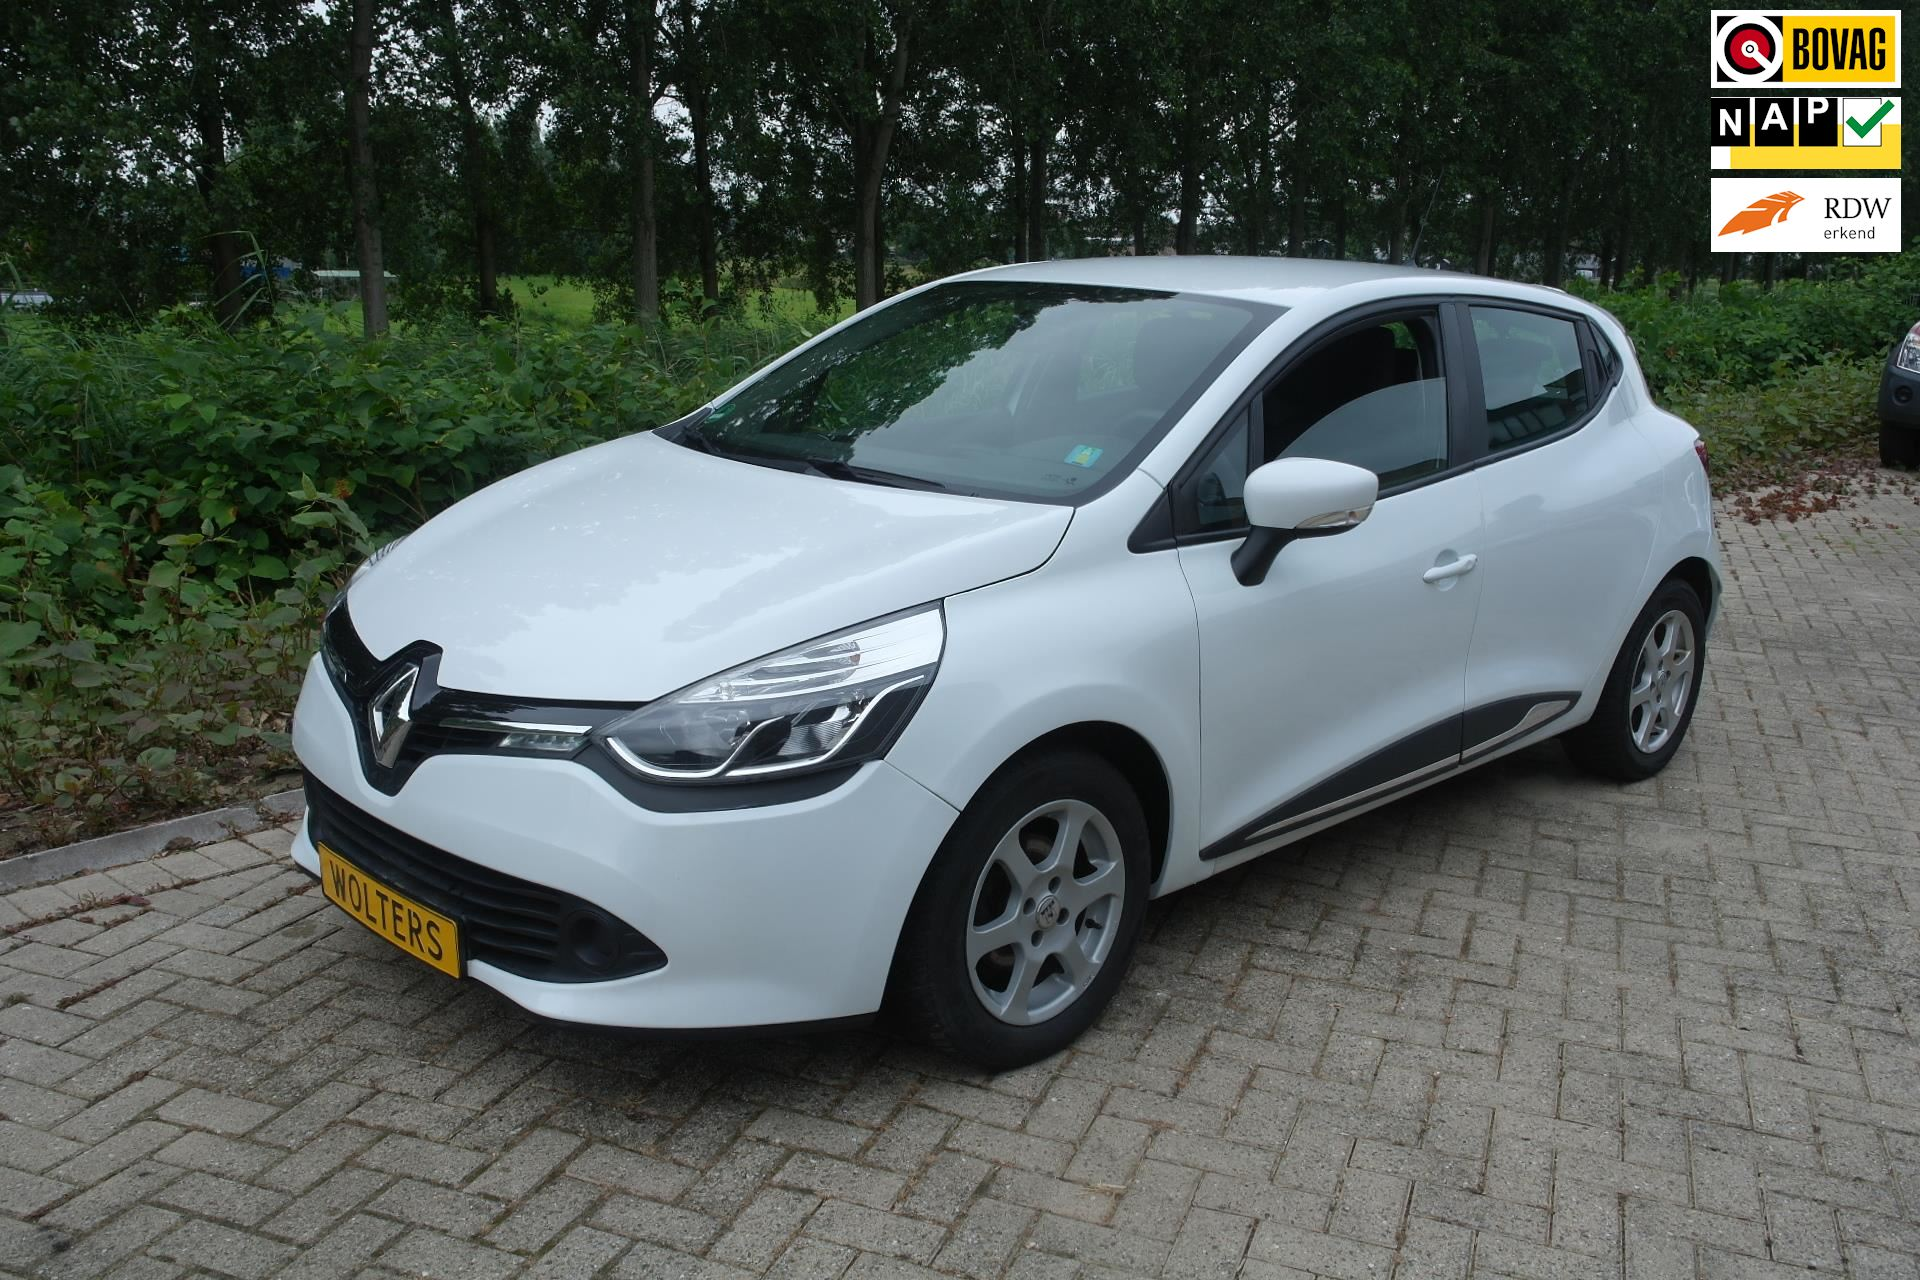 Renault Clio occasion - Wolters Autohandel